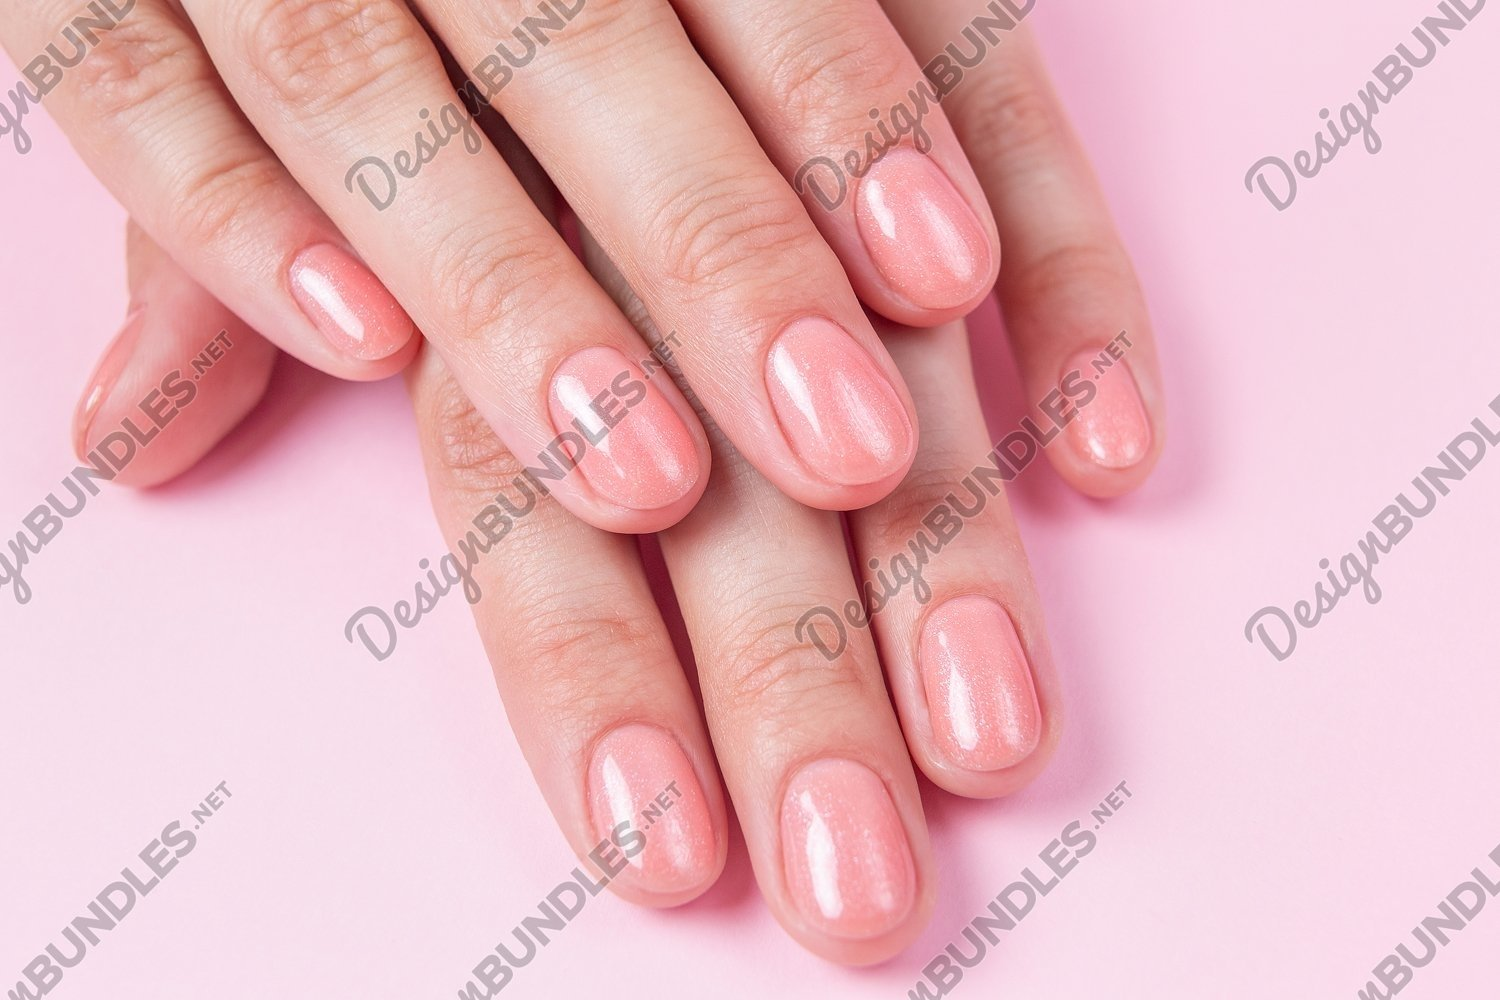 Nude nails covered with gel polish on a pink background example image 1